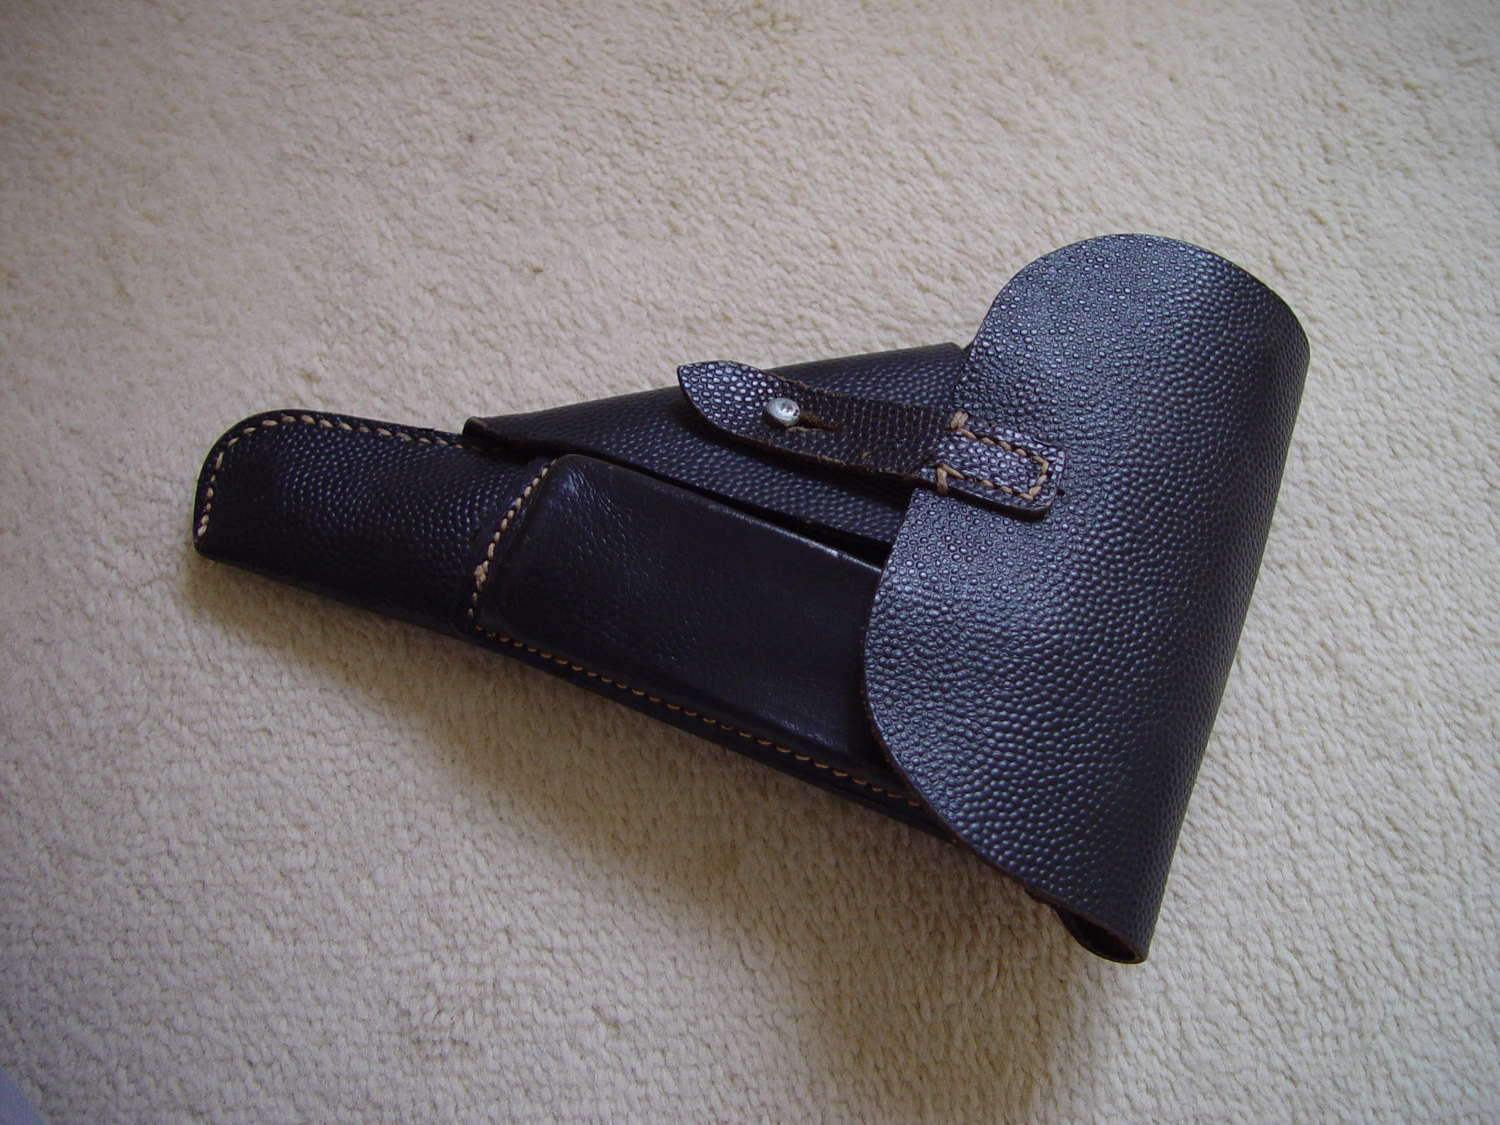 P38 Walther soft shell holster